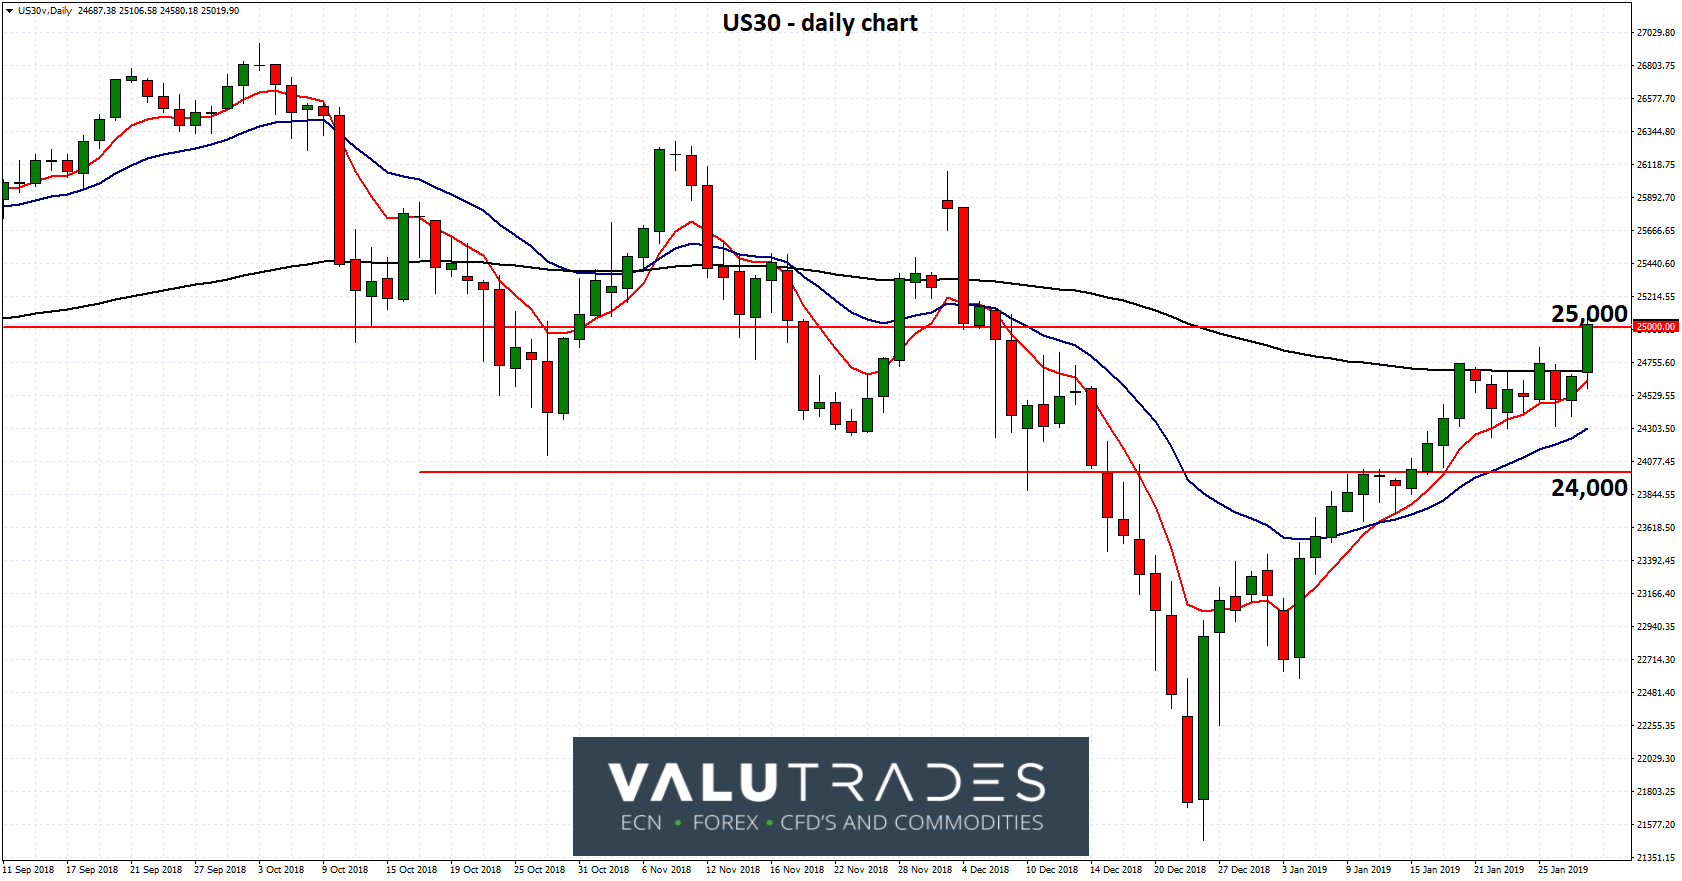 US30 - Looks to Push Through Resistance at 25000 as Fed Signals Pause on Rates